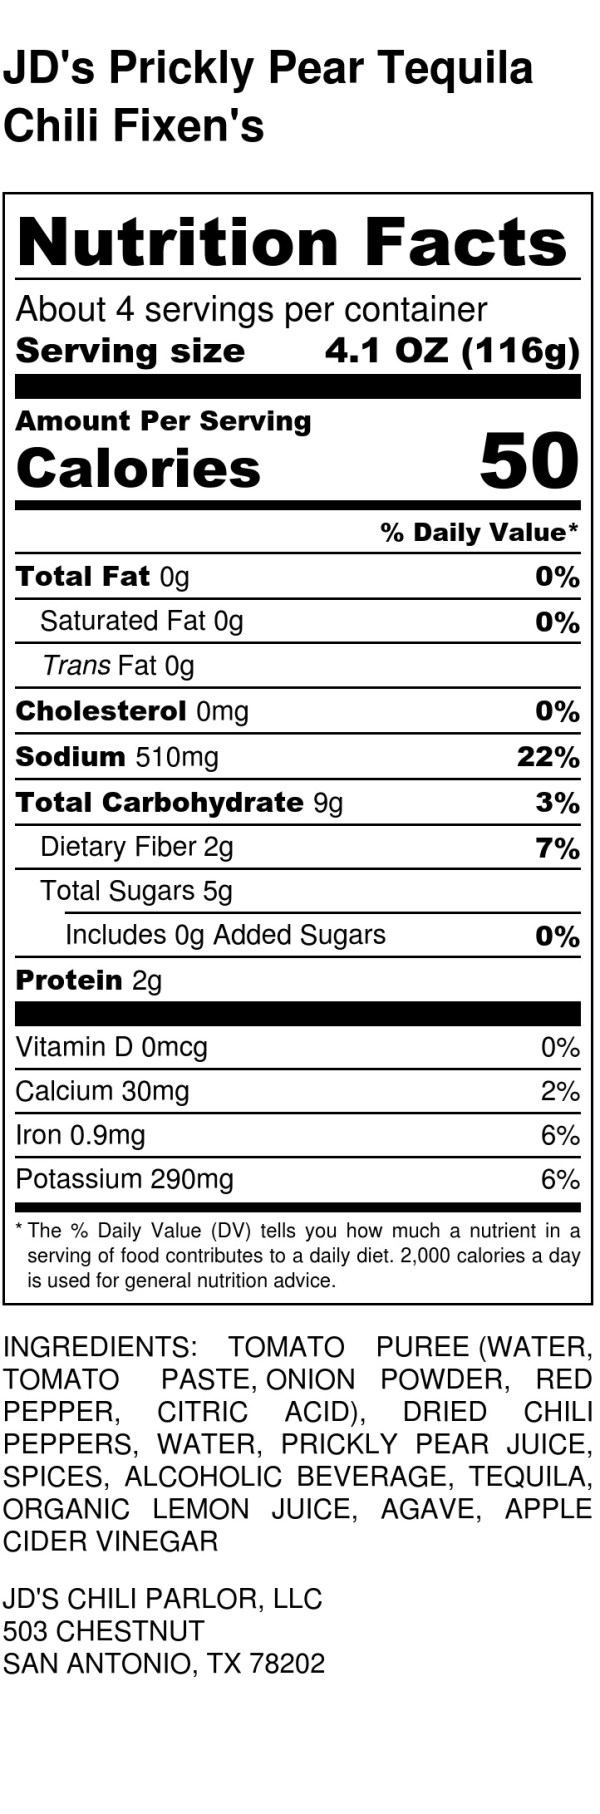 JD's Prickly Pear Tequila Chili Fixin's - Nutrition Label